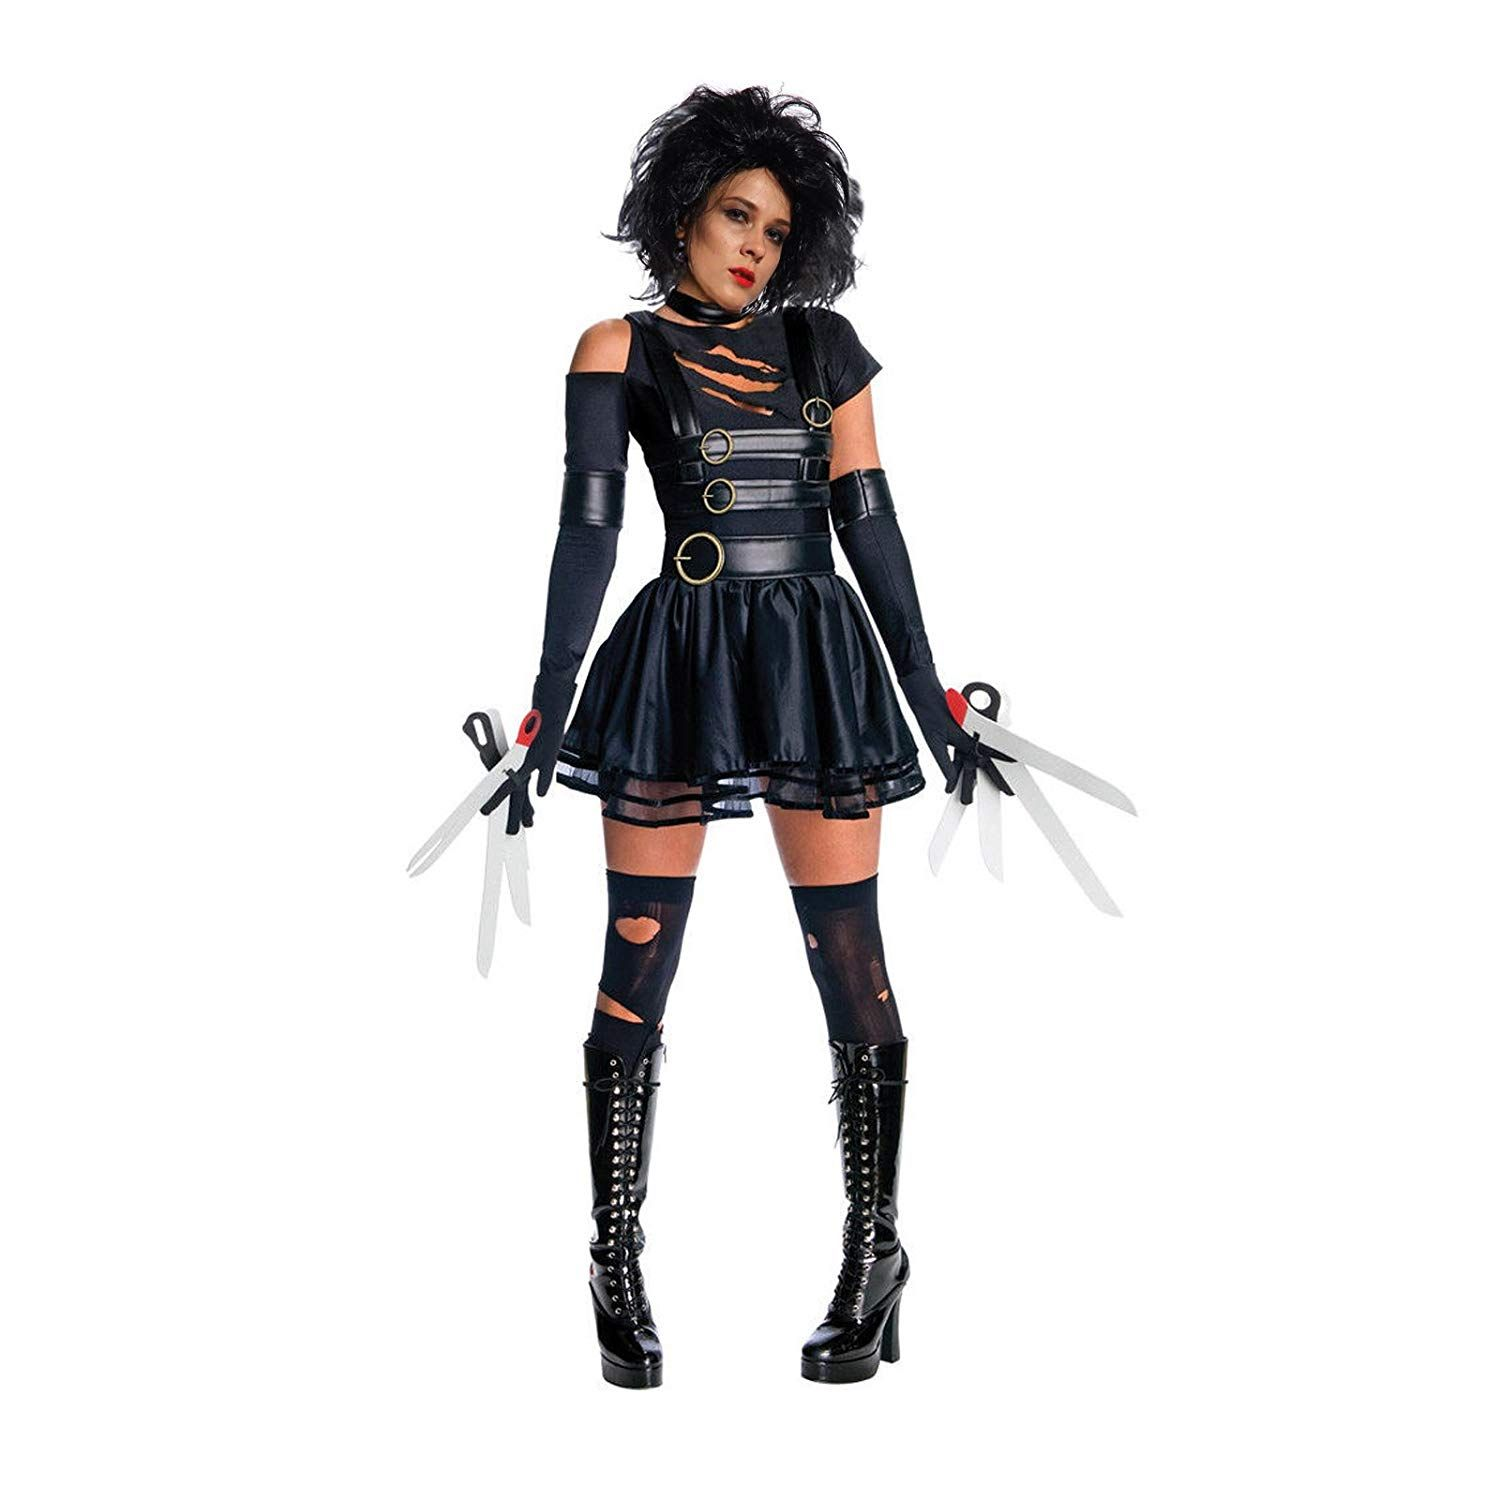 25 scary halloween costume ideas - scariest costumes for women & men